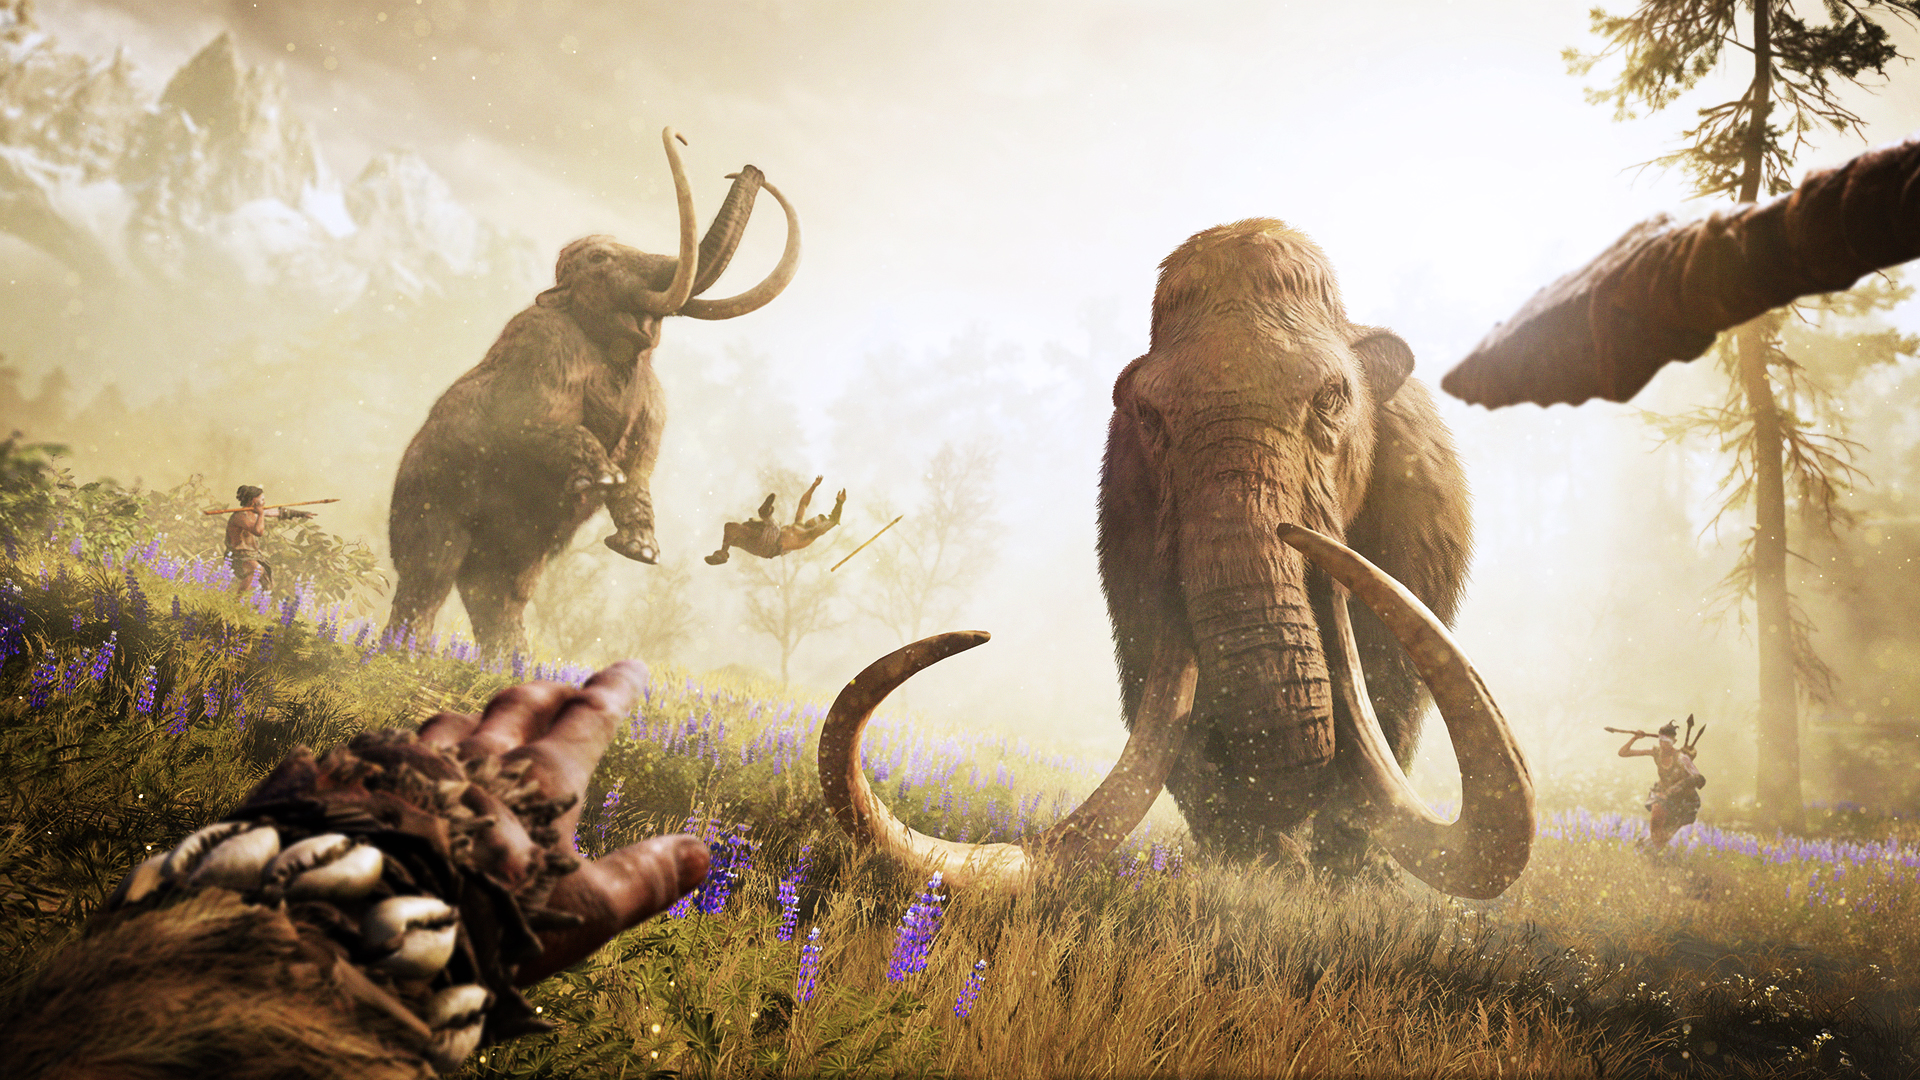 mammoth_hunt_gold_1080p_221522.jpg